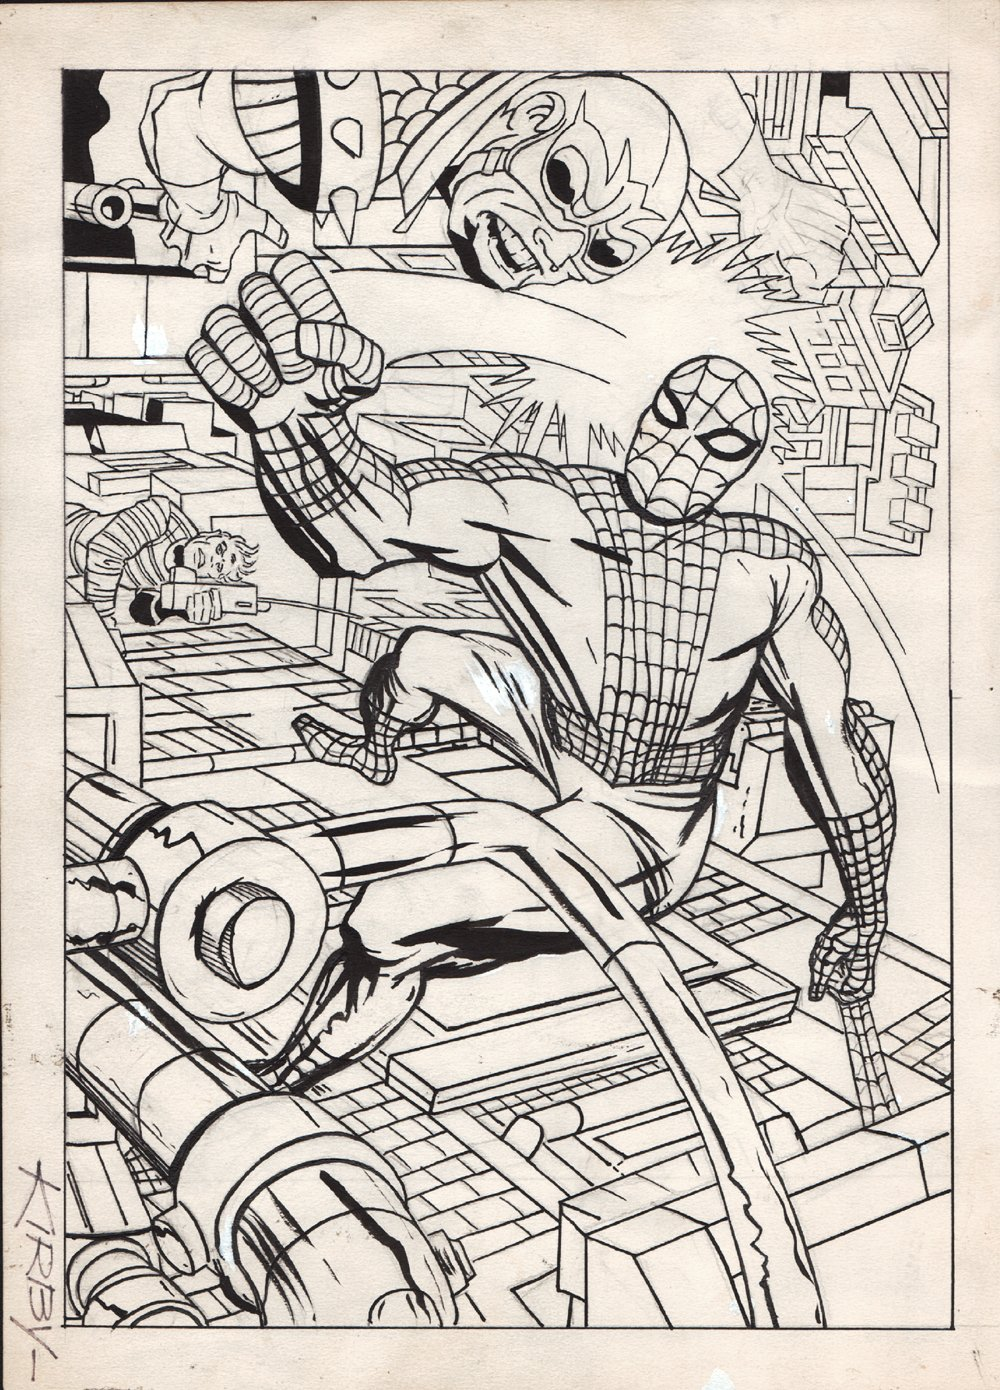 Marvelmania #5 Cover (ONLY KNOWN JACK KIRBY SILVER AGE SPIDER-MAN COVER!) 1960s